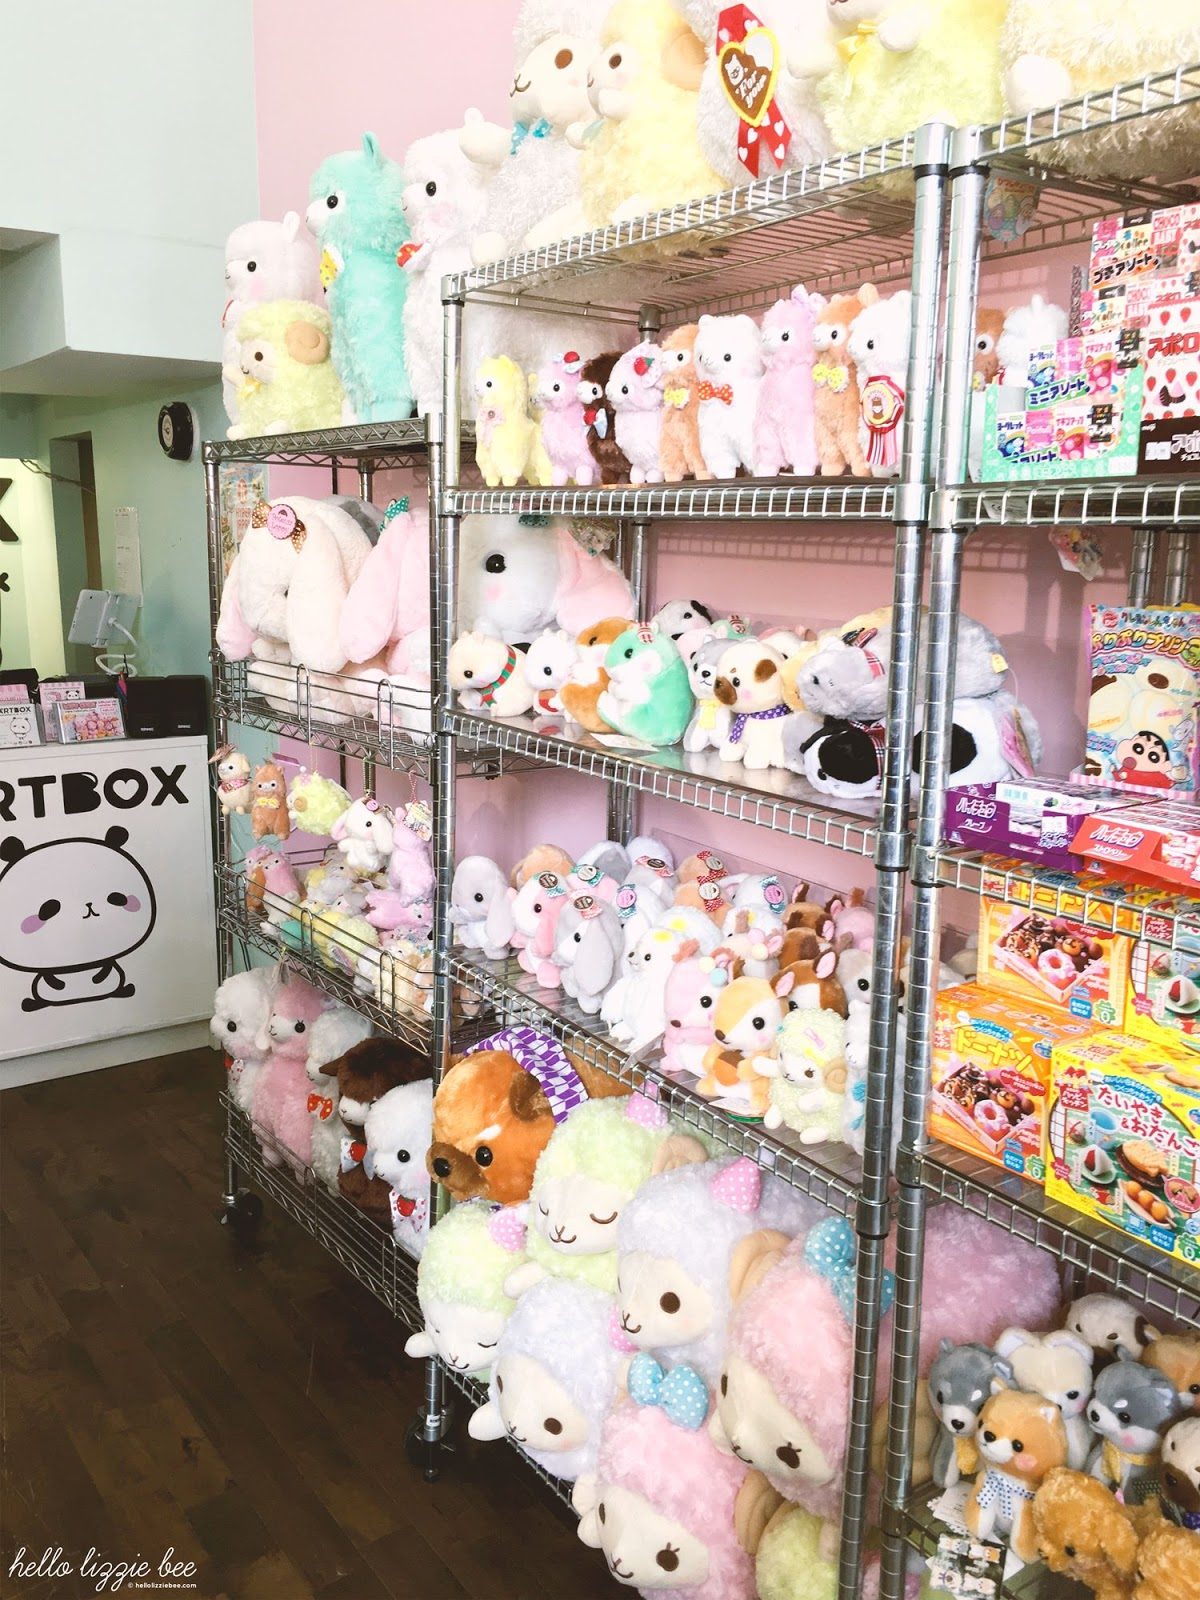 kawaii plushies, artbox london